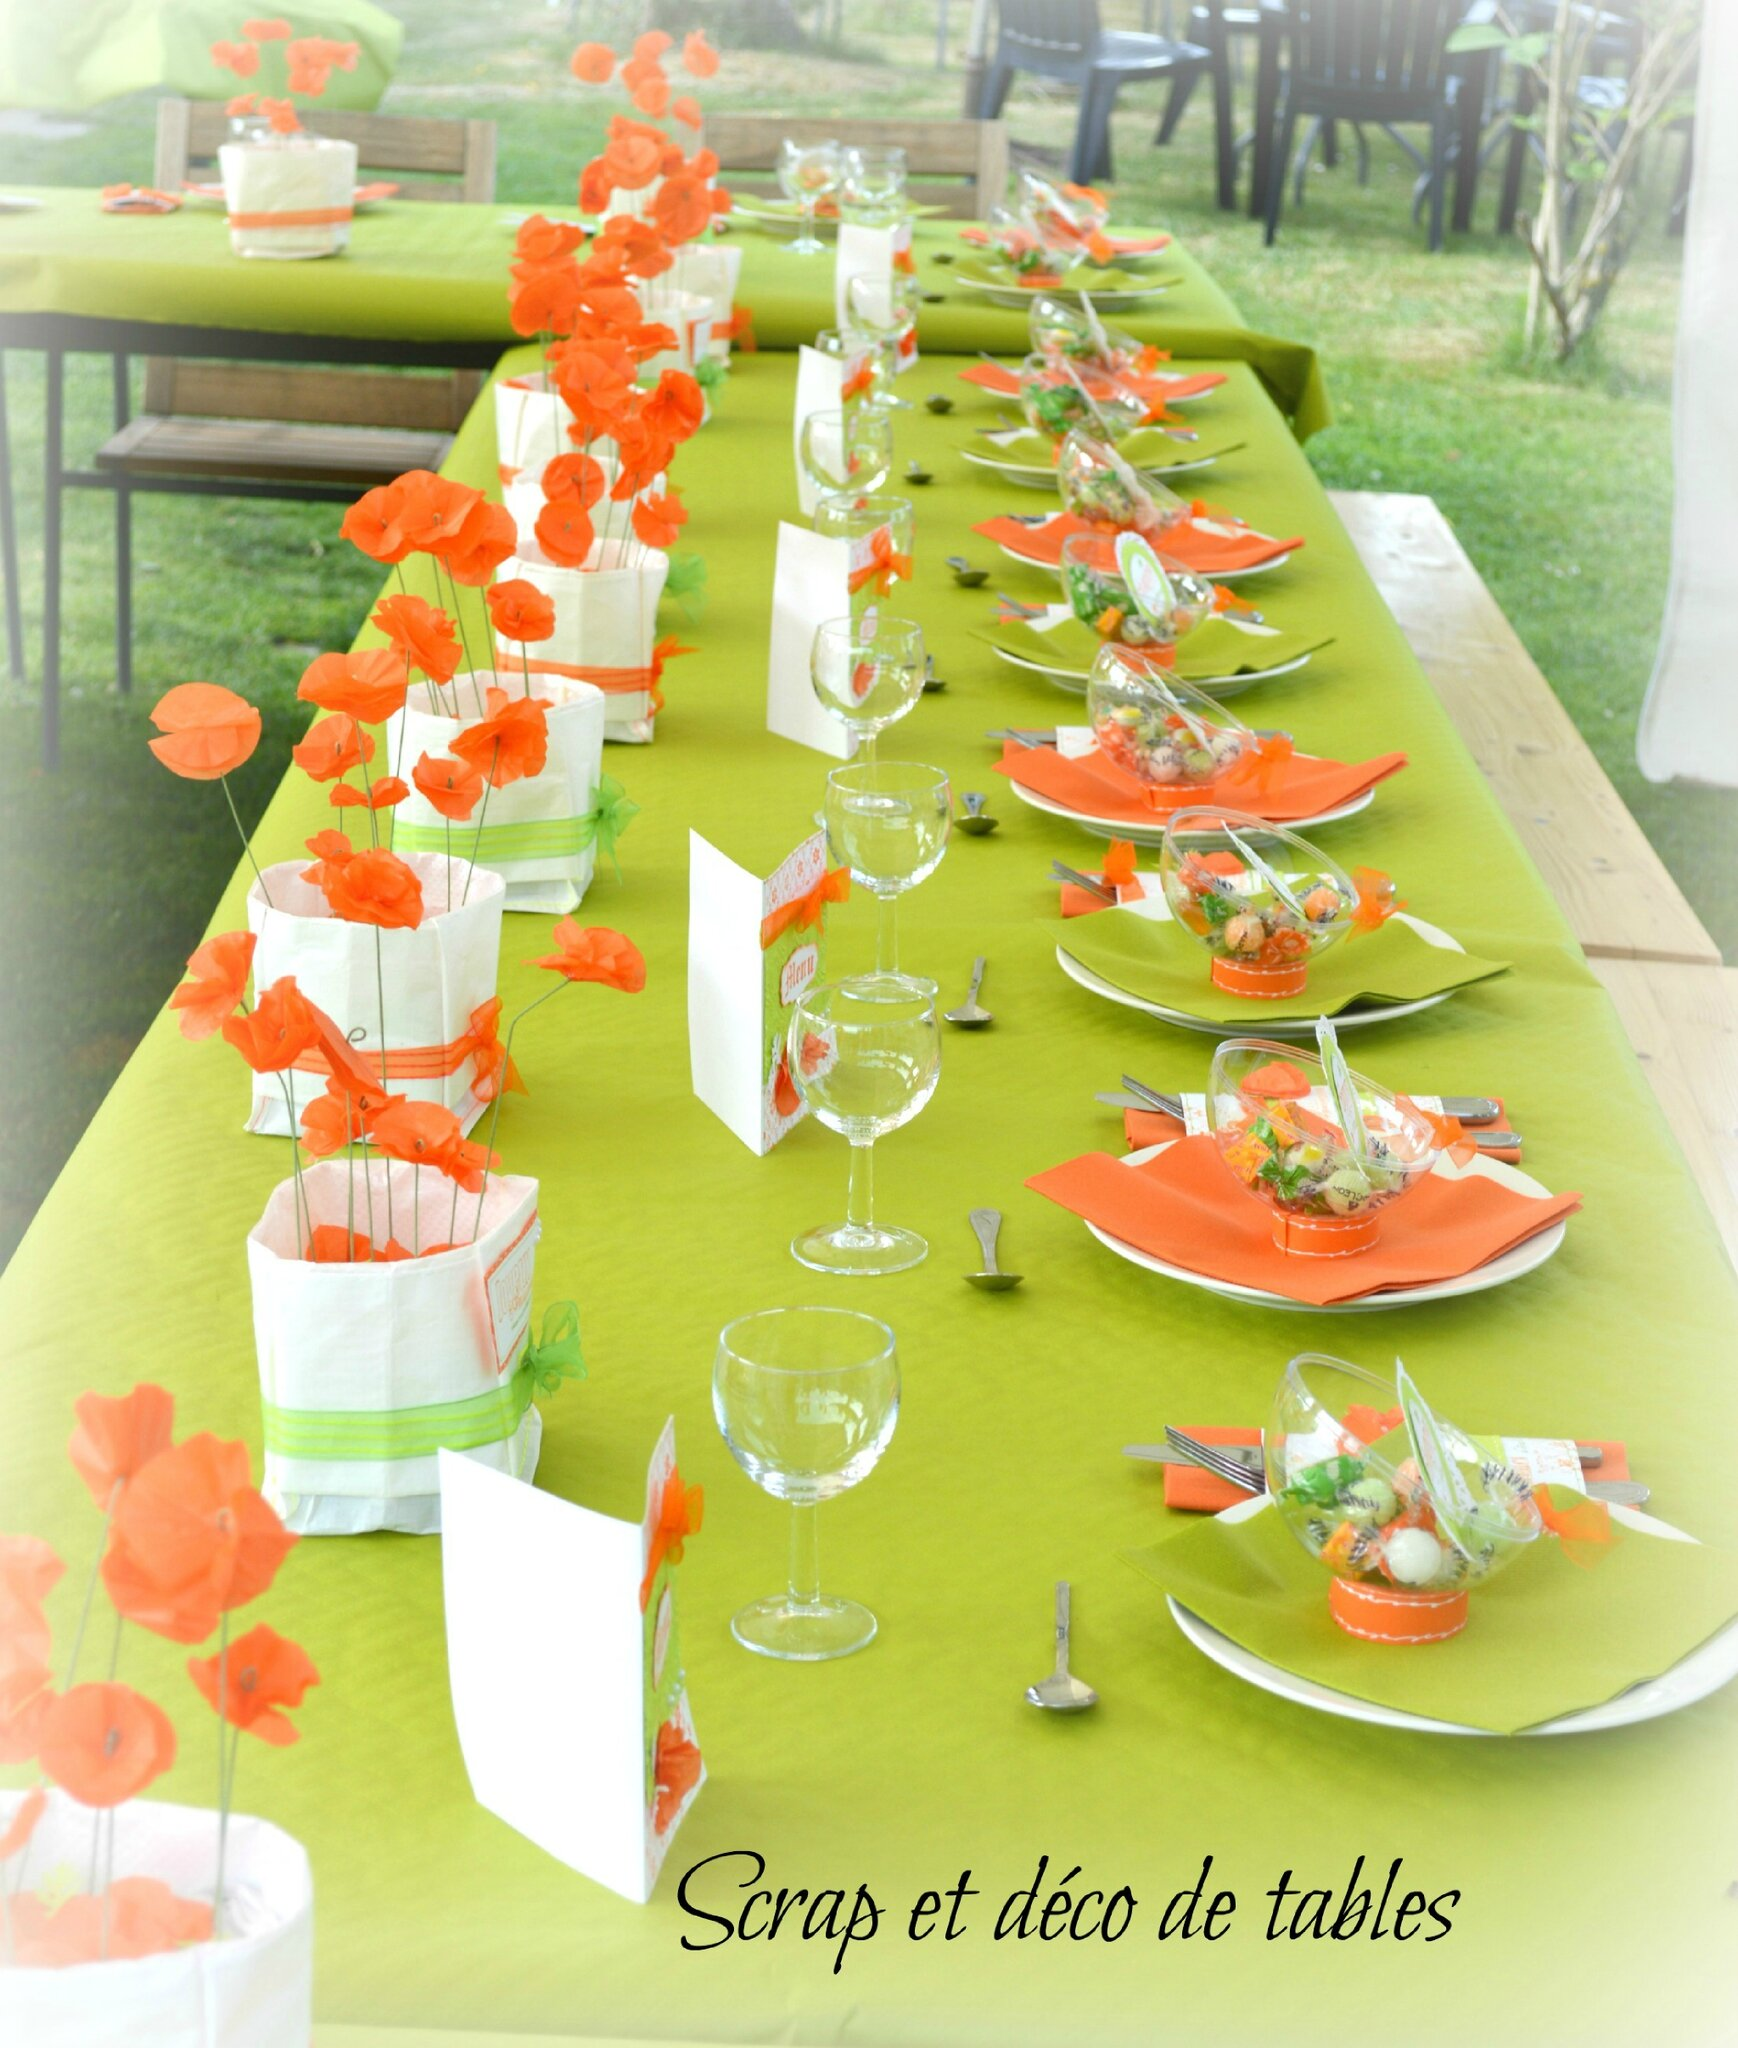 Decoration de table anniversaire 60 ans - Decoration de table anniversaire 60 ans ...